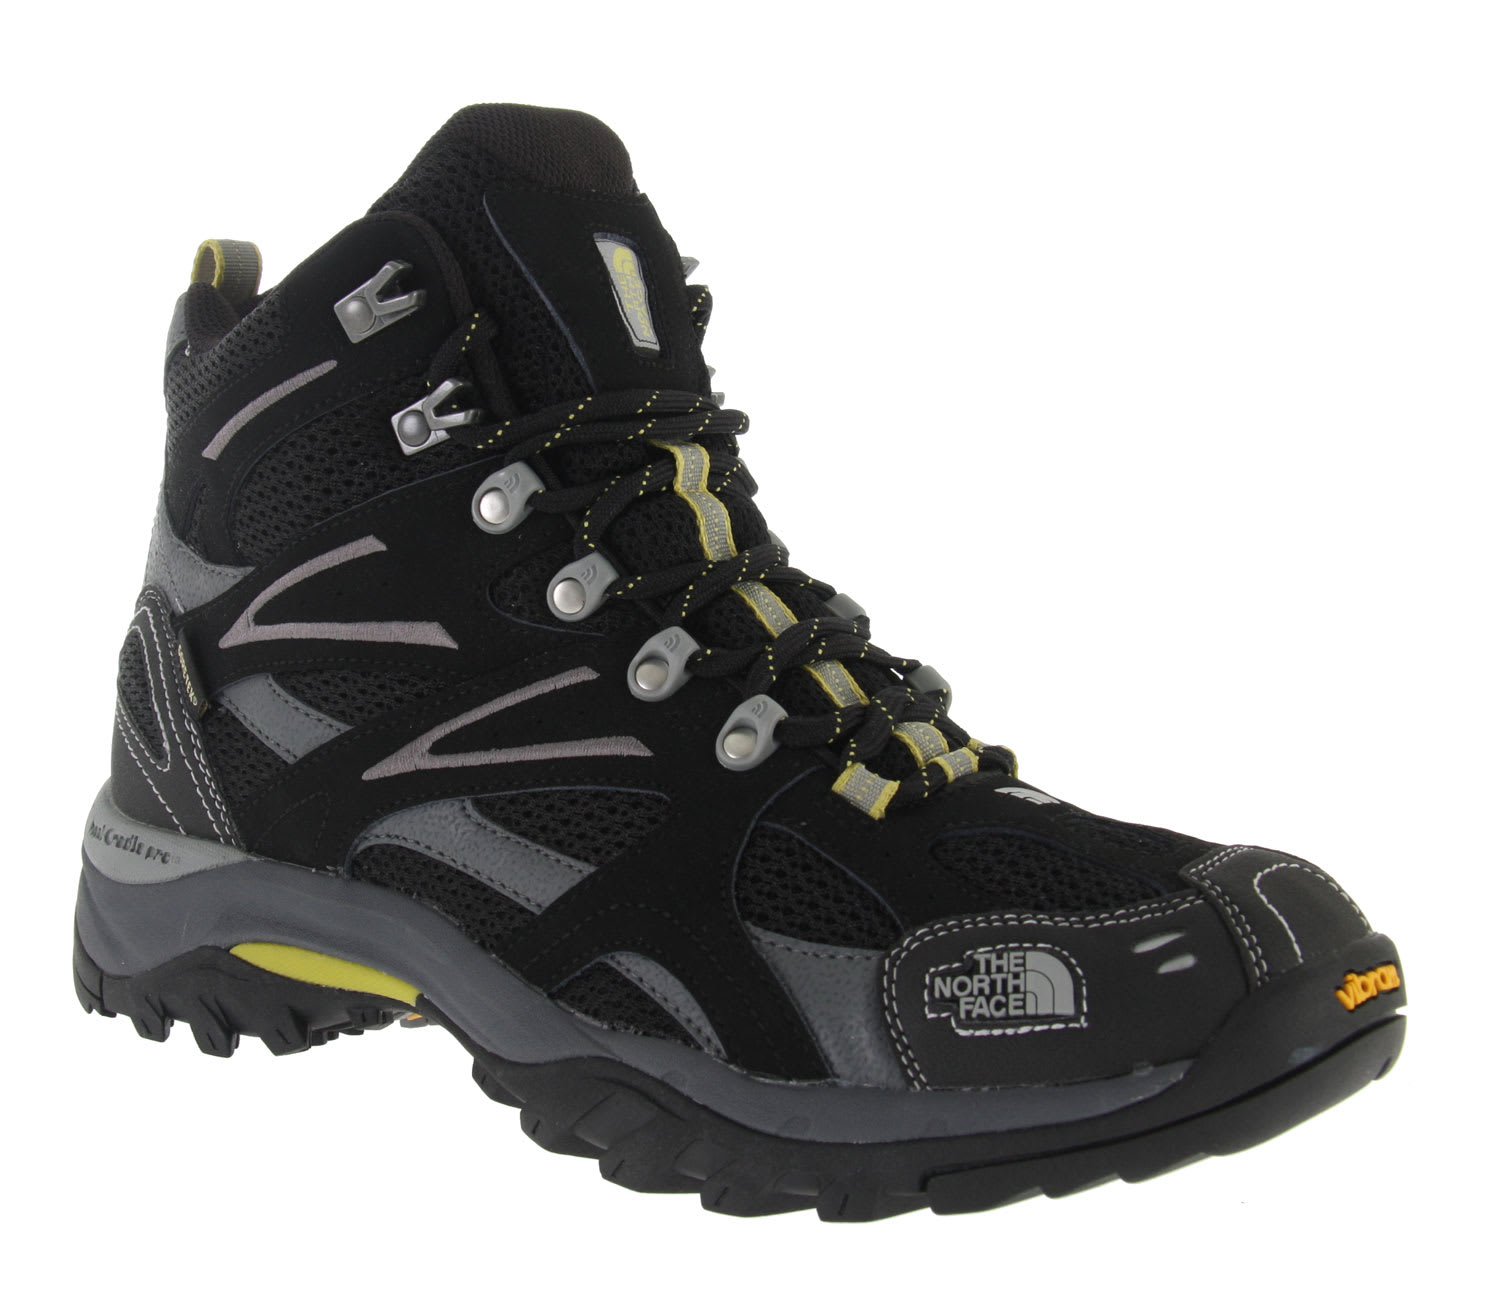 the north face hedgehog tall 3 gtx hiking shoes. Black Bedroom Furniture Sets. Home Design Ideas